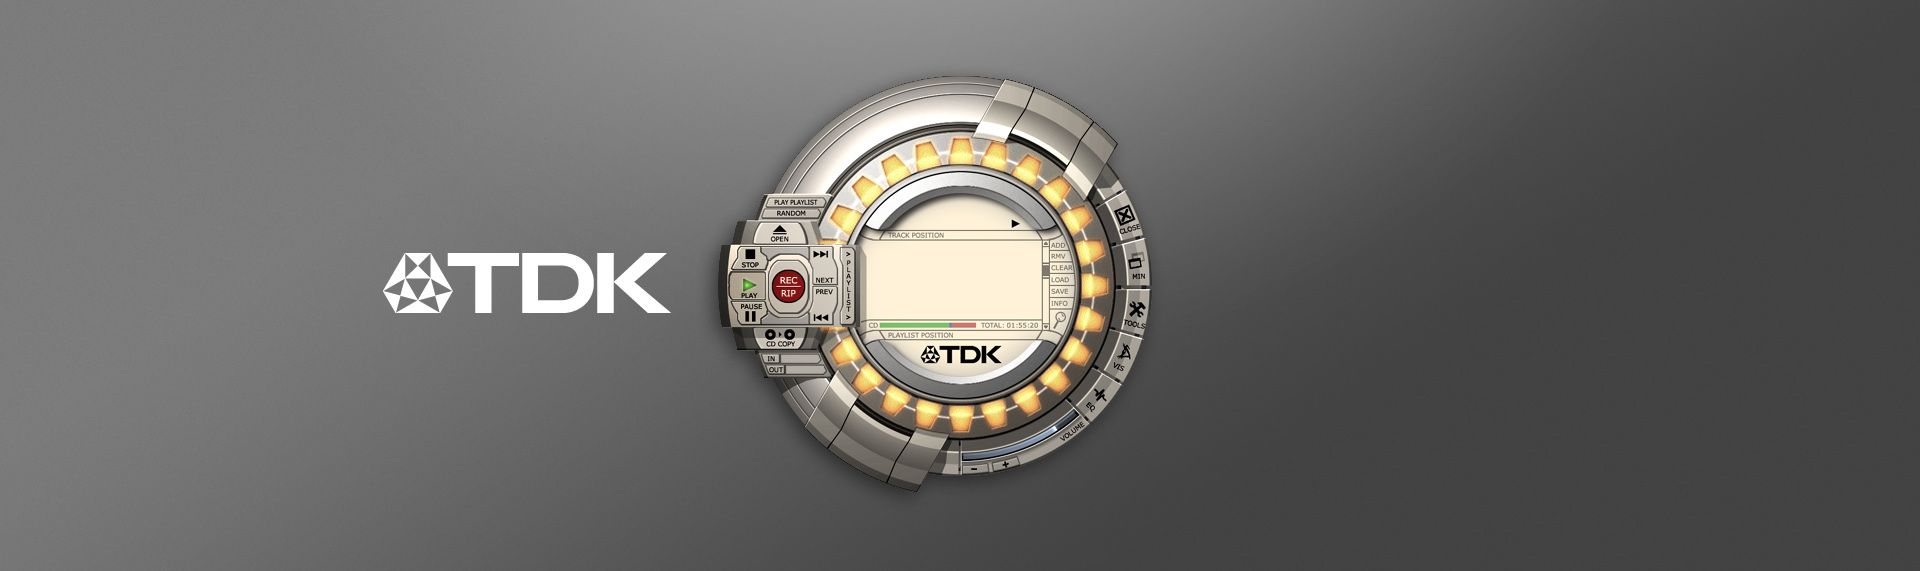 """TDK Digital MixMaster  Desktop Application UX & UI Design, Logo Design  TDK Electronics Corporation came to The Skins Factory to build the default interface for their proprietary audio player. The TDK Digital MixMaster was part of the CD Blender Software Suite of applications that shipped with their veloCD reWriters. While this is a little bulky in terms of today's UI design language, in 2001, when we created this, it was cutting edge. This is proof positive that we were ahead of our time, even when our studio was only a year old. ZDNet called our UI design: """"a spiffy, circular skin""""."""